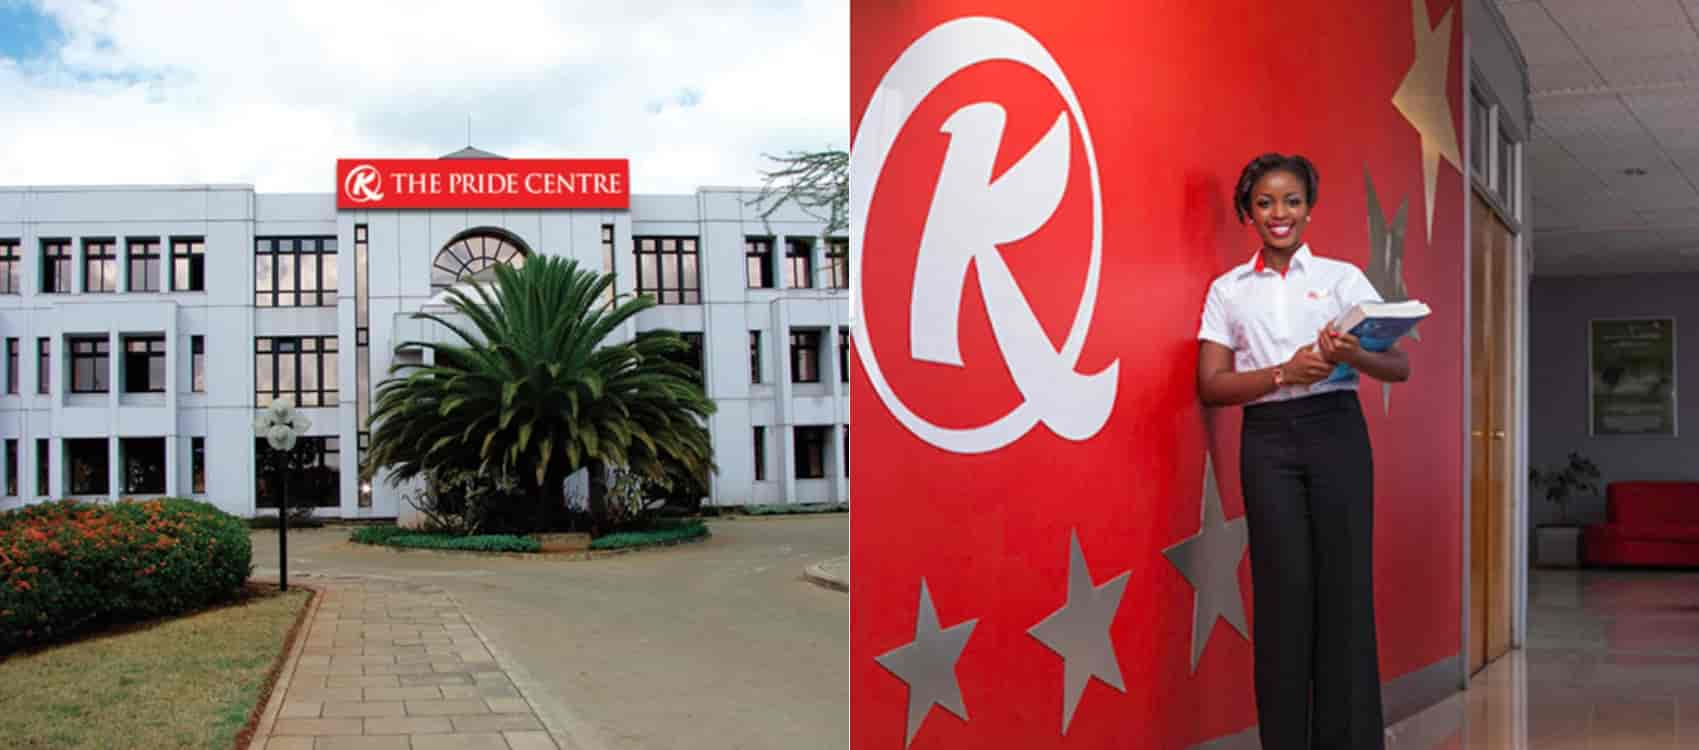 Kenya Airways KQ Pride Centre Courses and Fee Structure